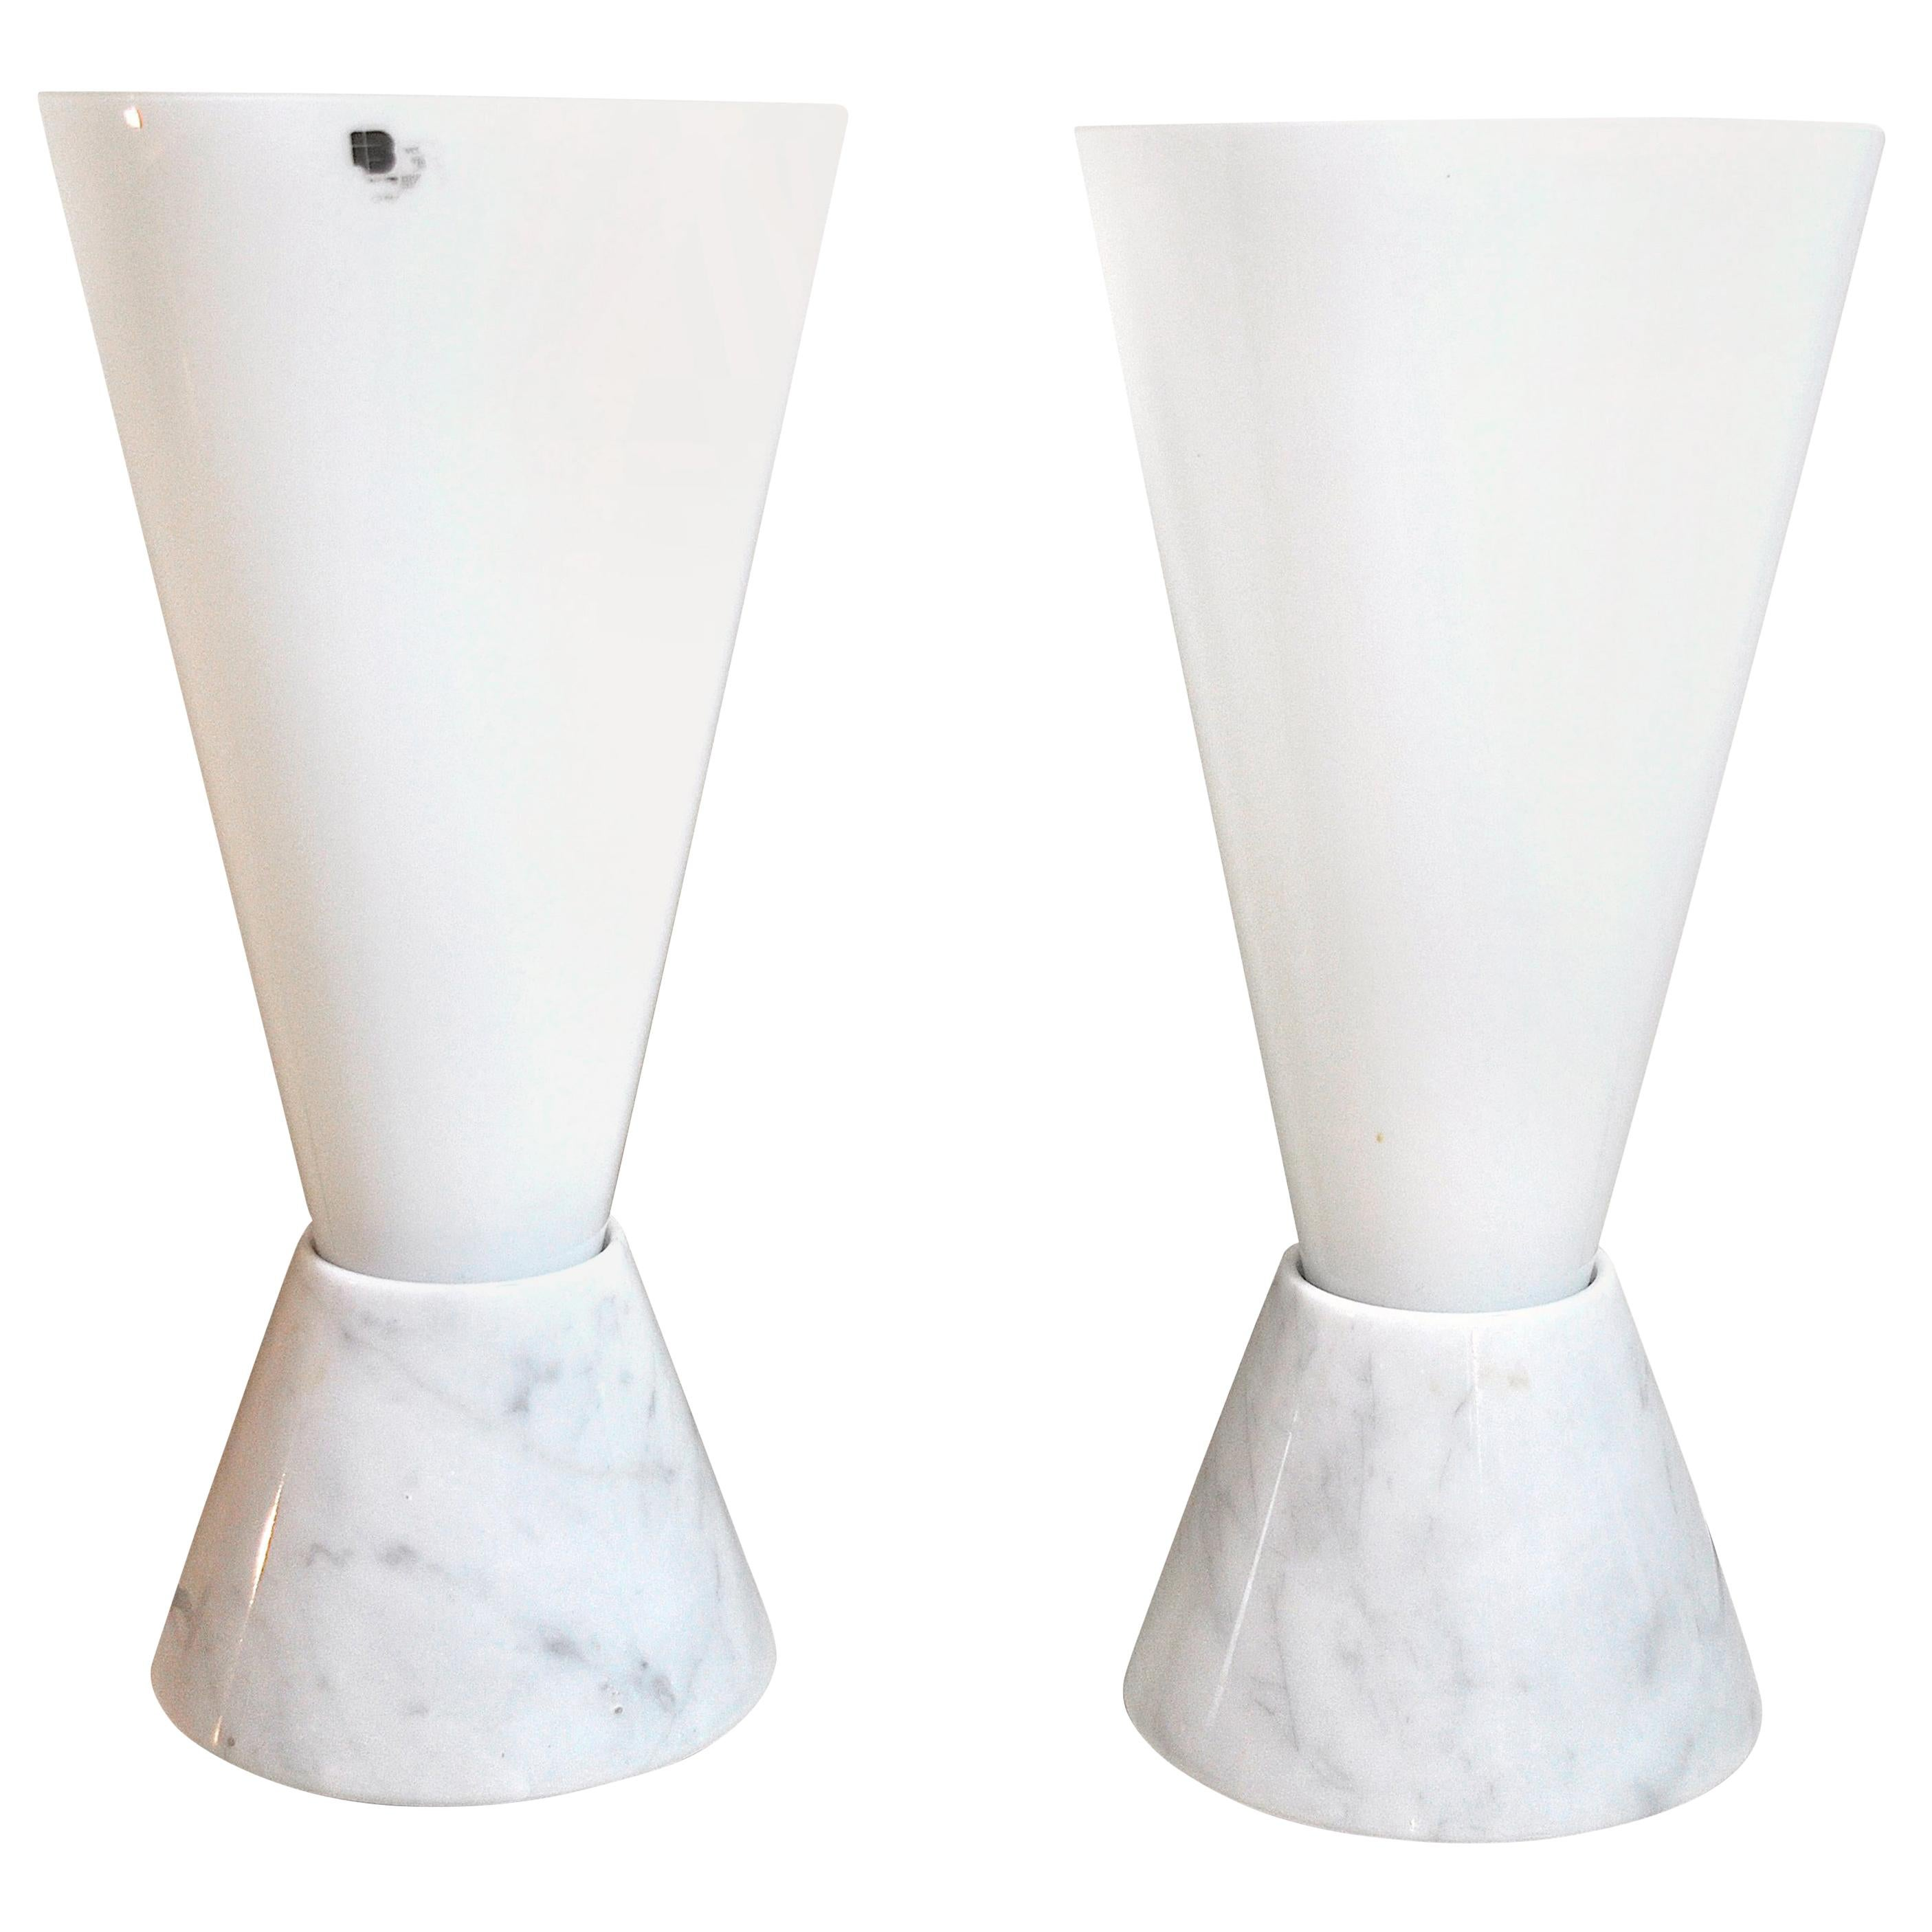 Italian Lamps in Murano Glass and Marble Base, 1970s